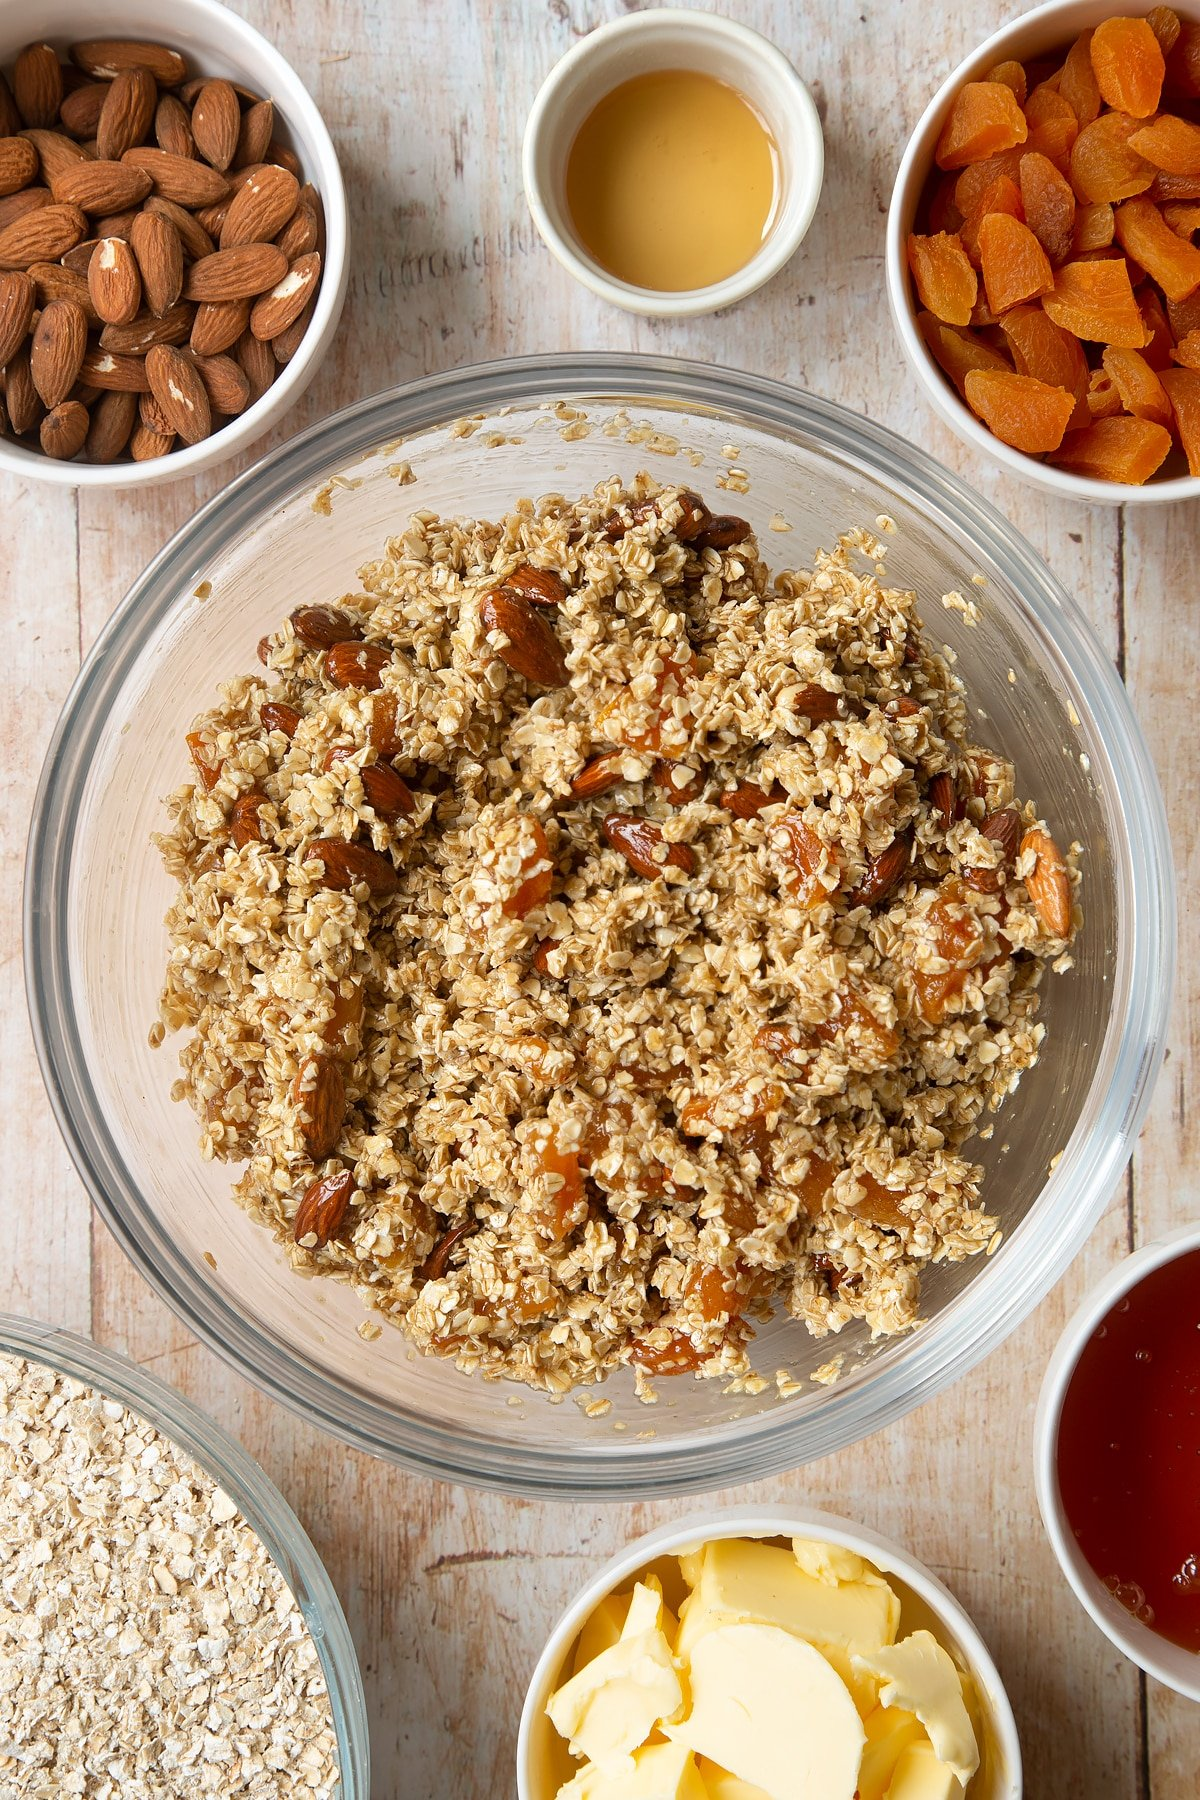 Overhead shot of oats, liquid mixture, apricots and nuts in a large clear bowl